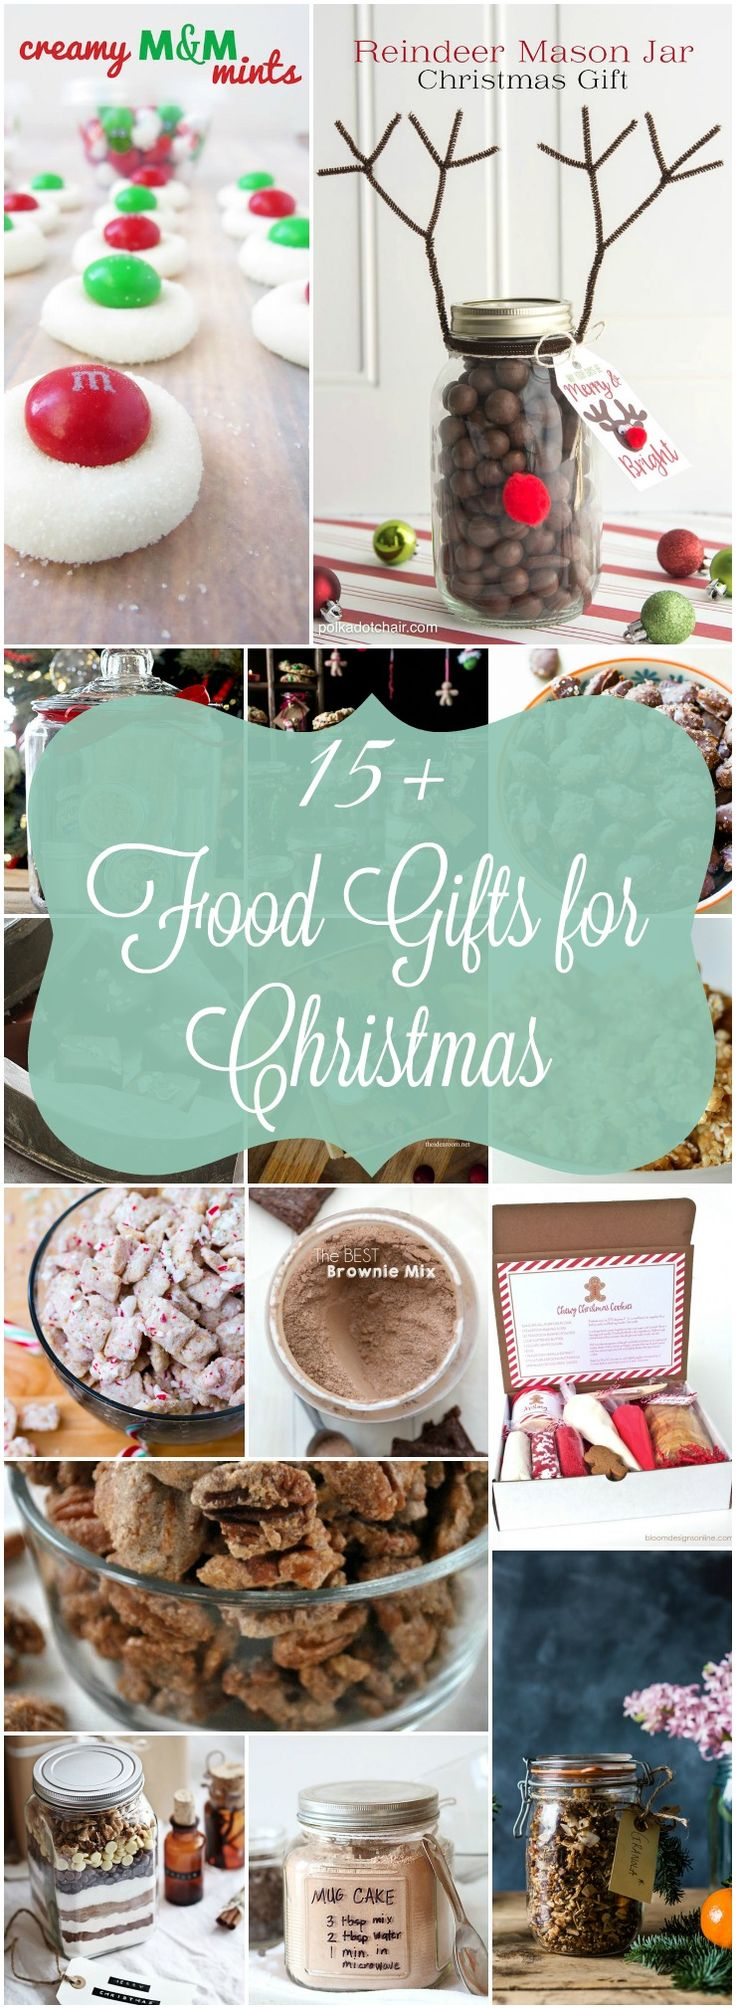 61 best Homemade Gifts images on Pinterest | Hand made gifts ...